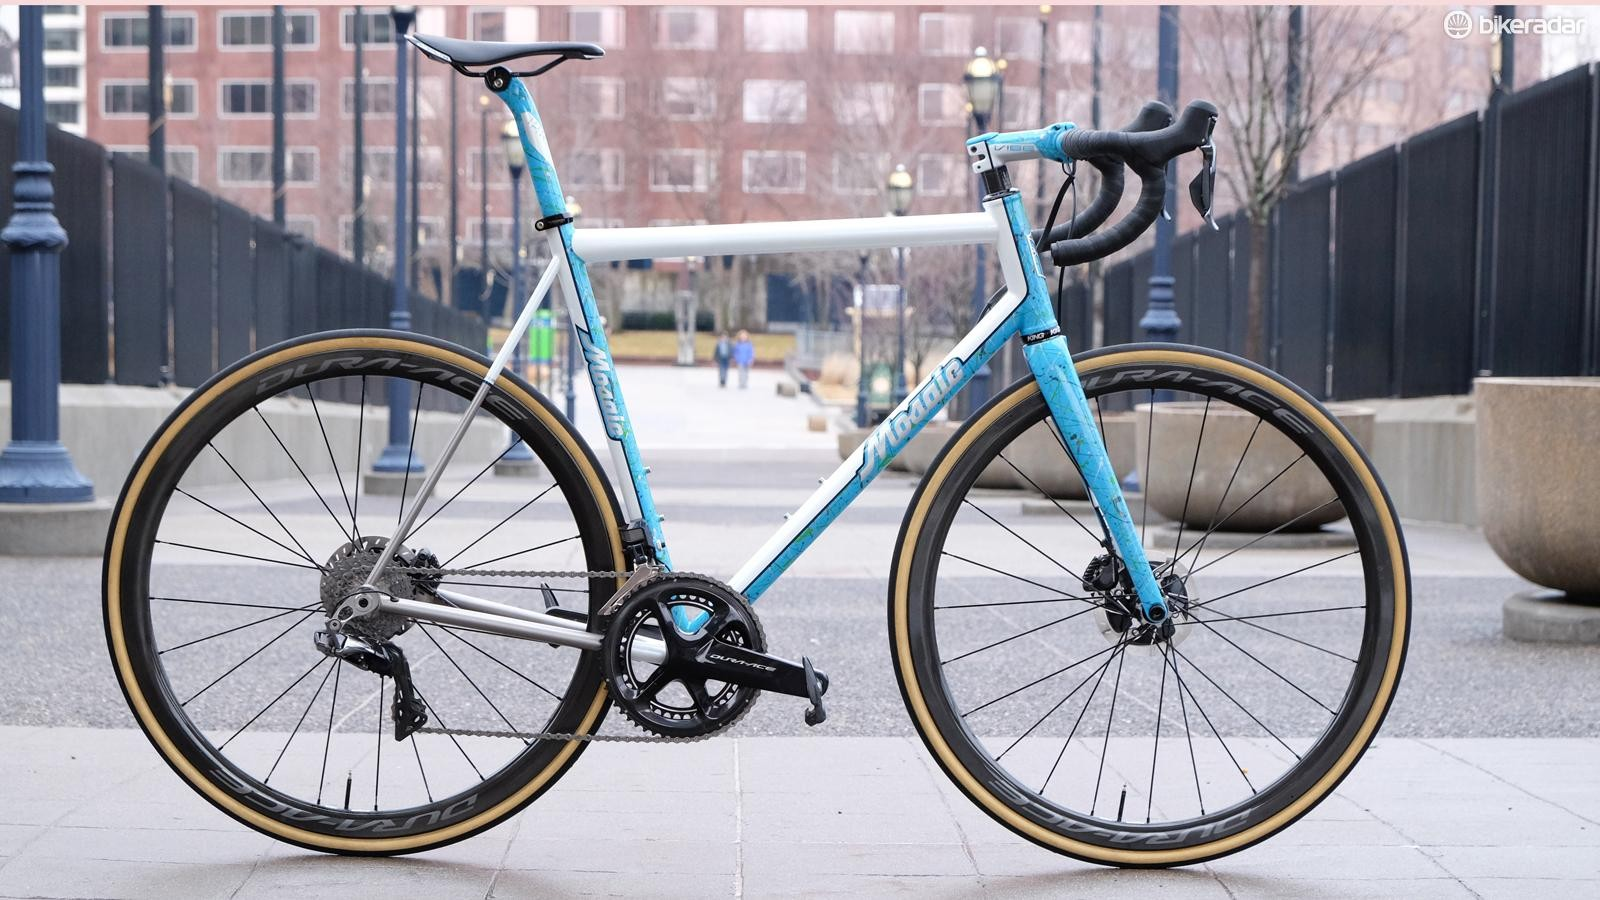 This Mosaic Cycles road bike was painted in Shimano's colors